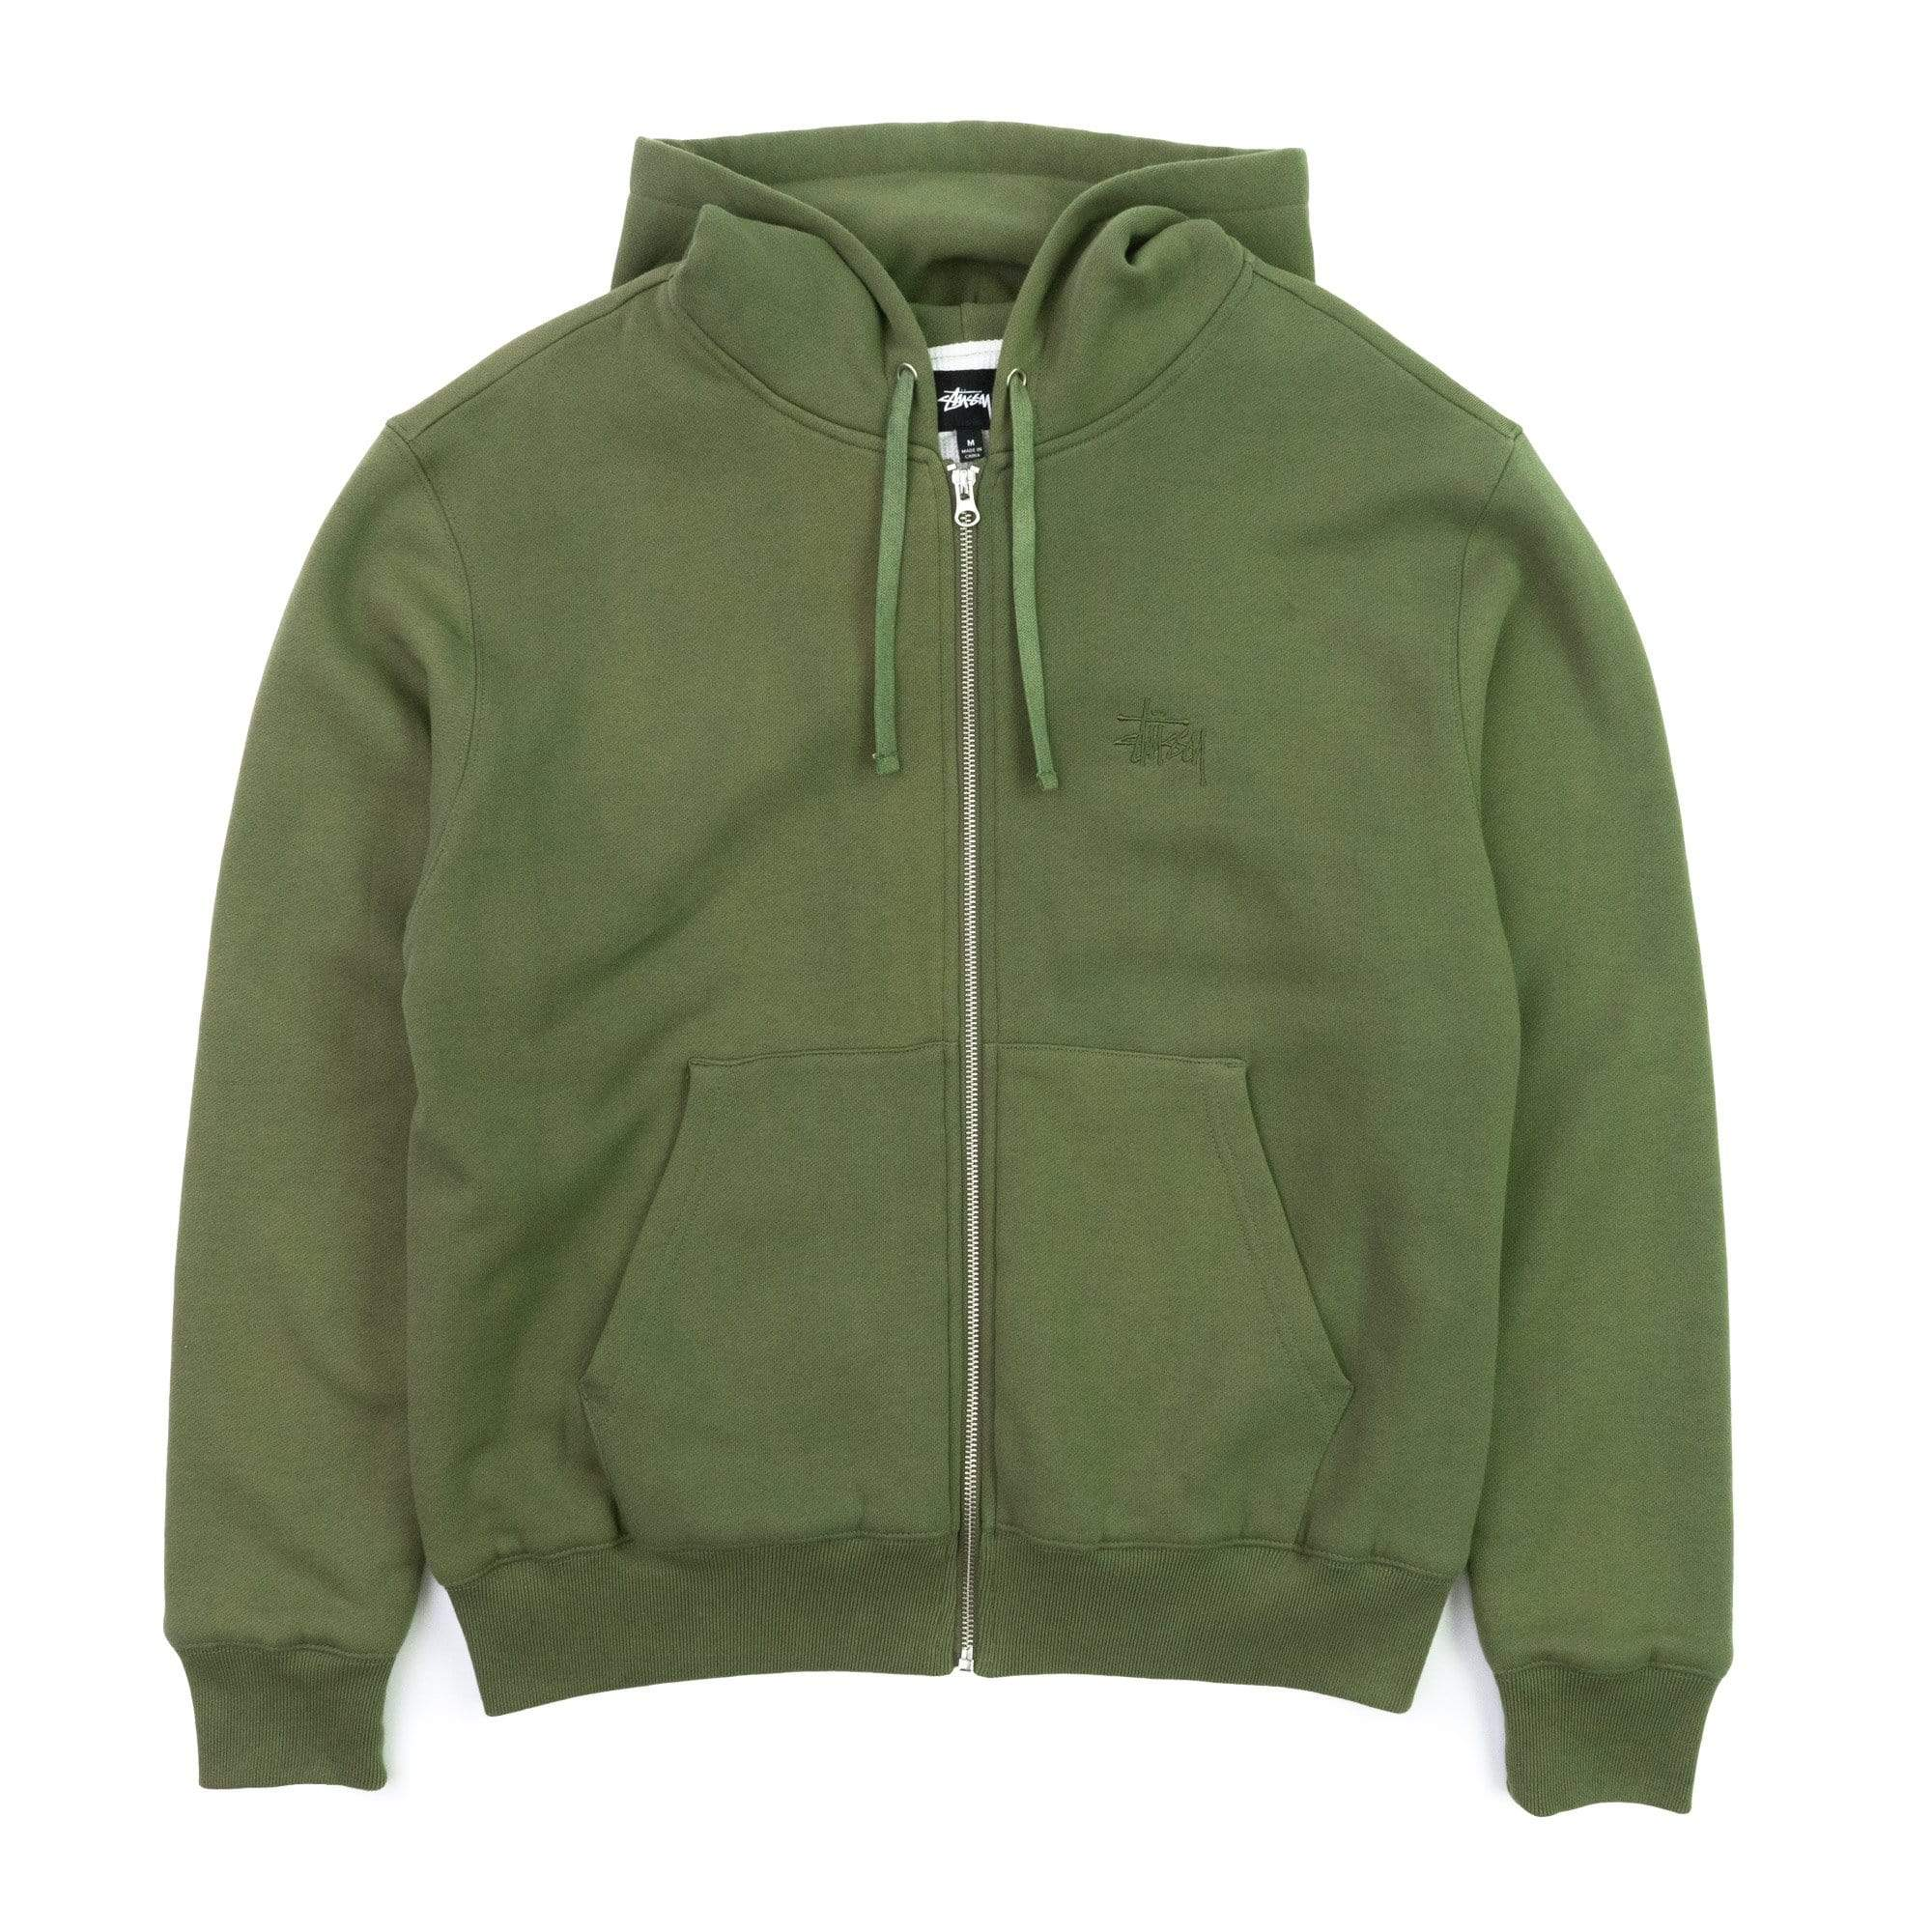 Stüssy Sweats & Hemden Gruen / M Thermal Zip Hoodie